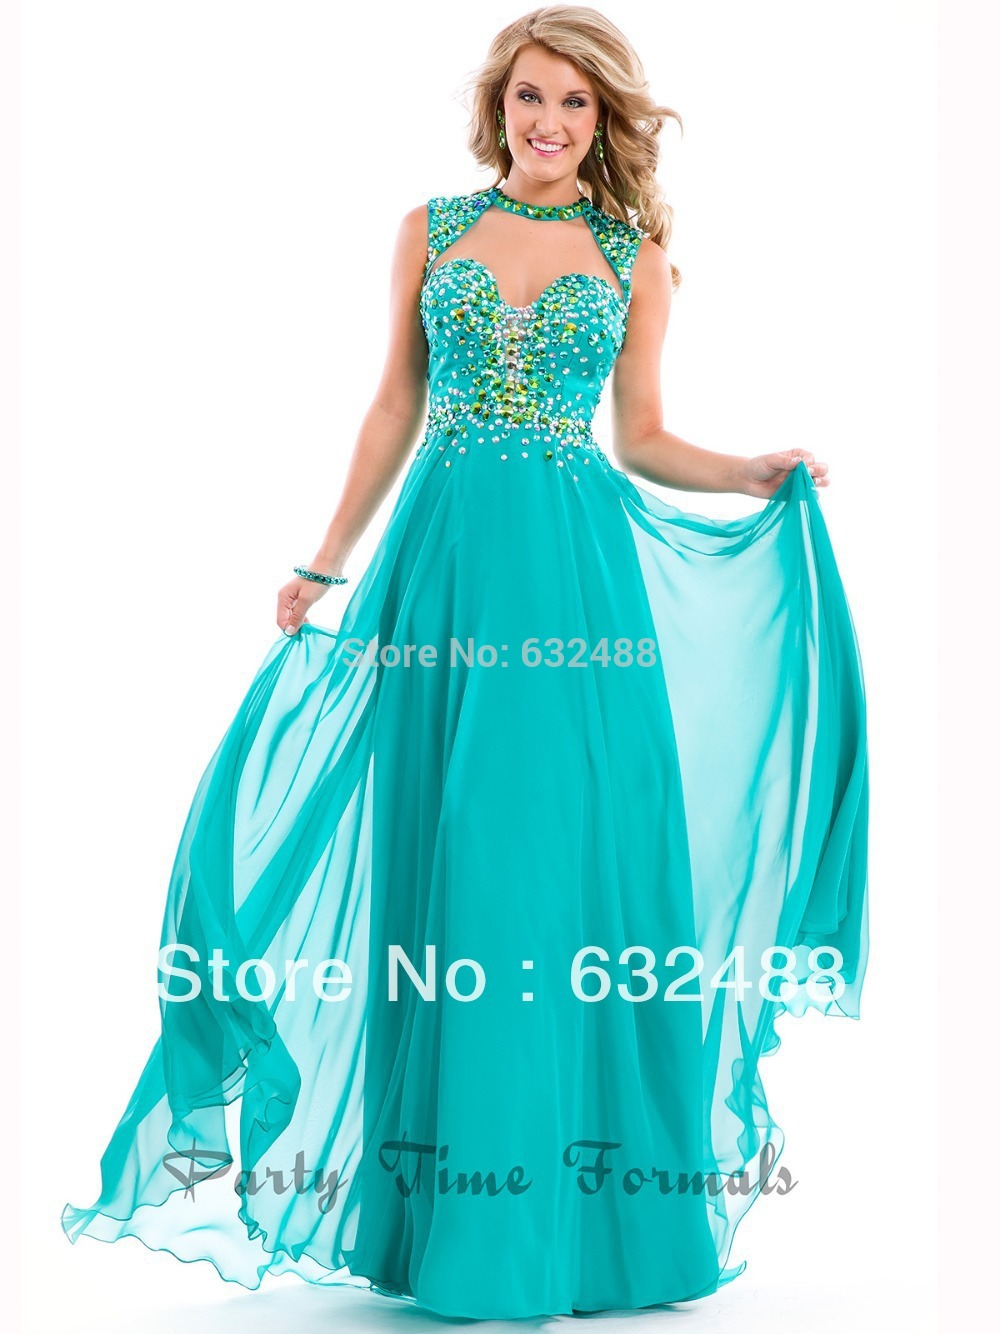 Long Formal Dresses Short Evening Stores That Sell Prom Cheap Camo ...